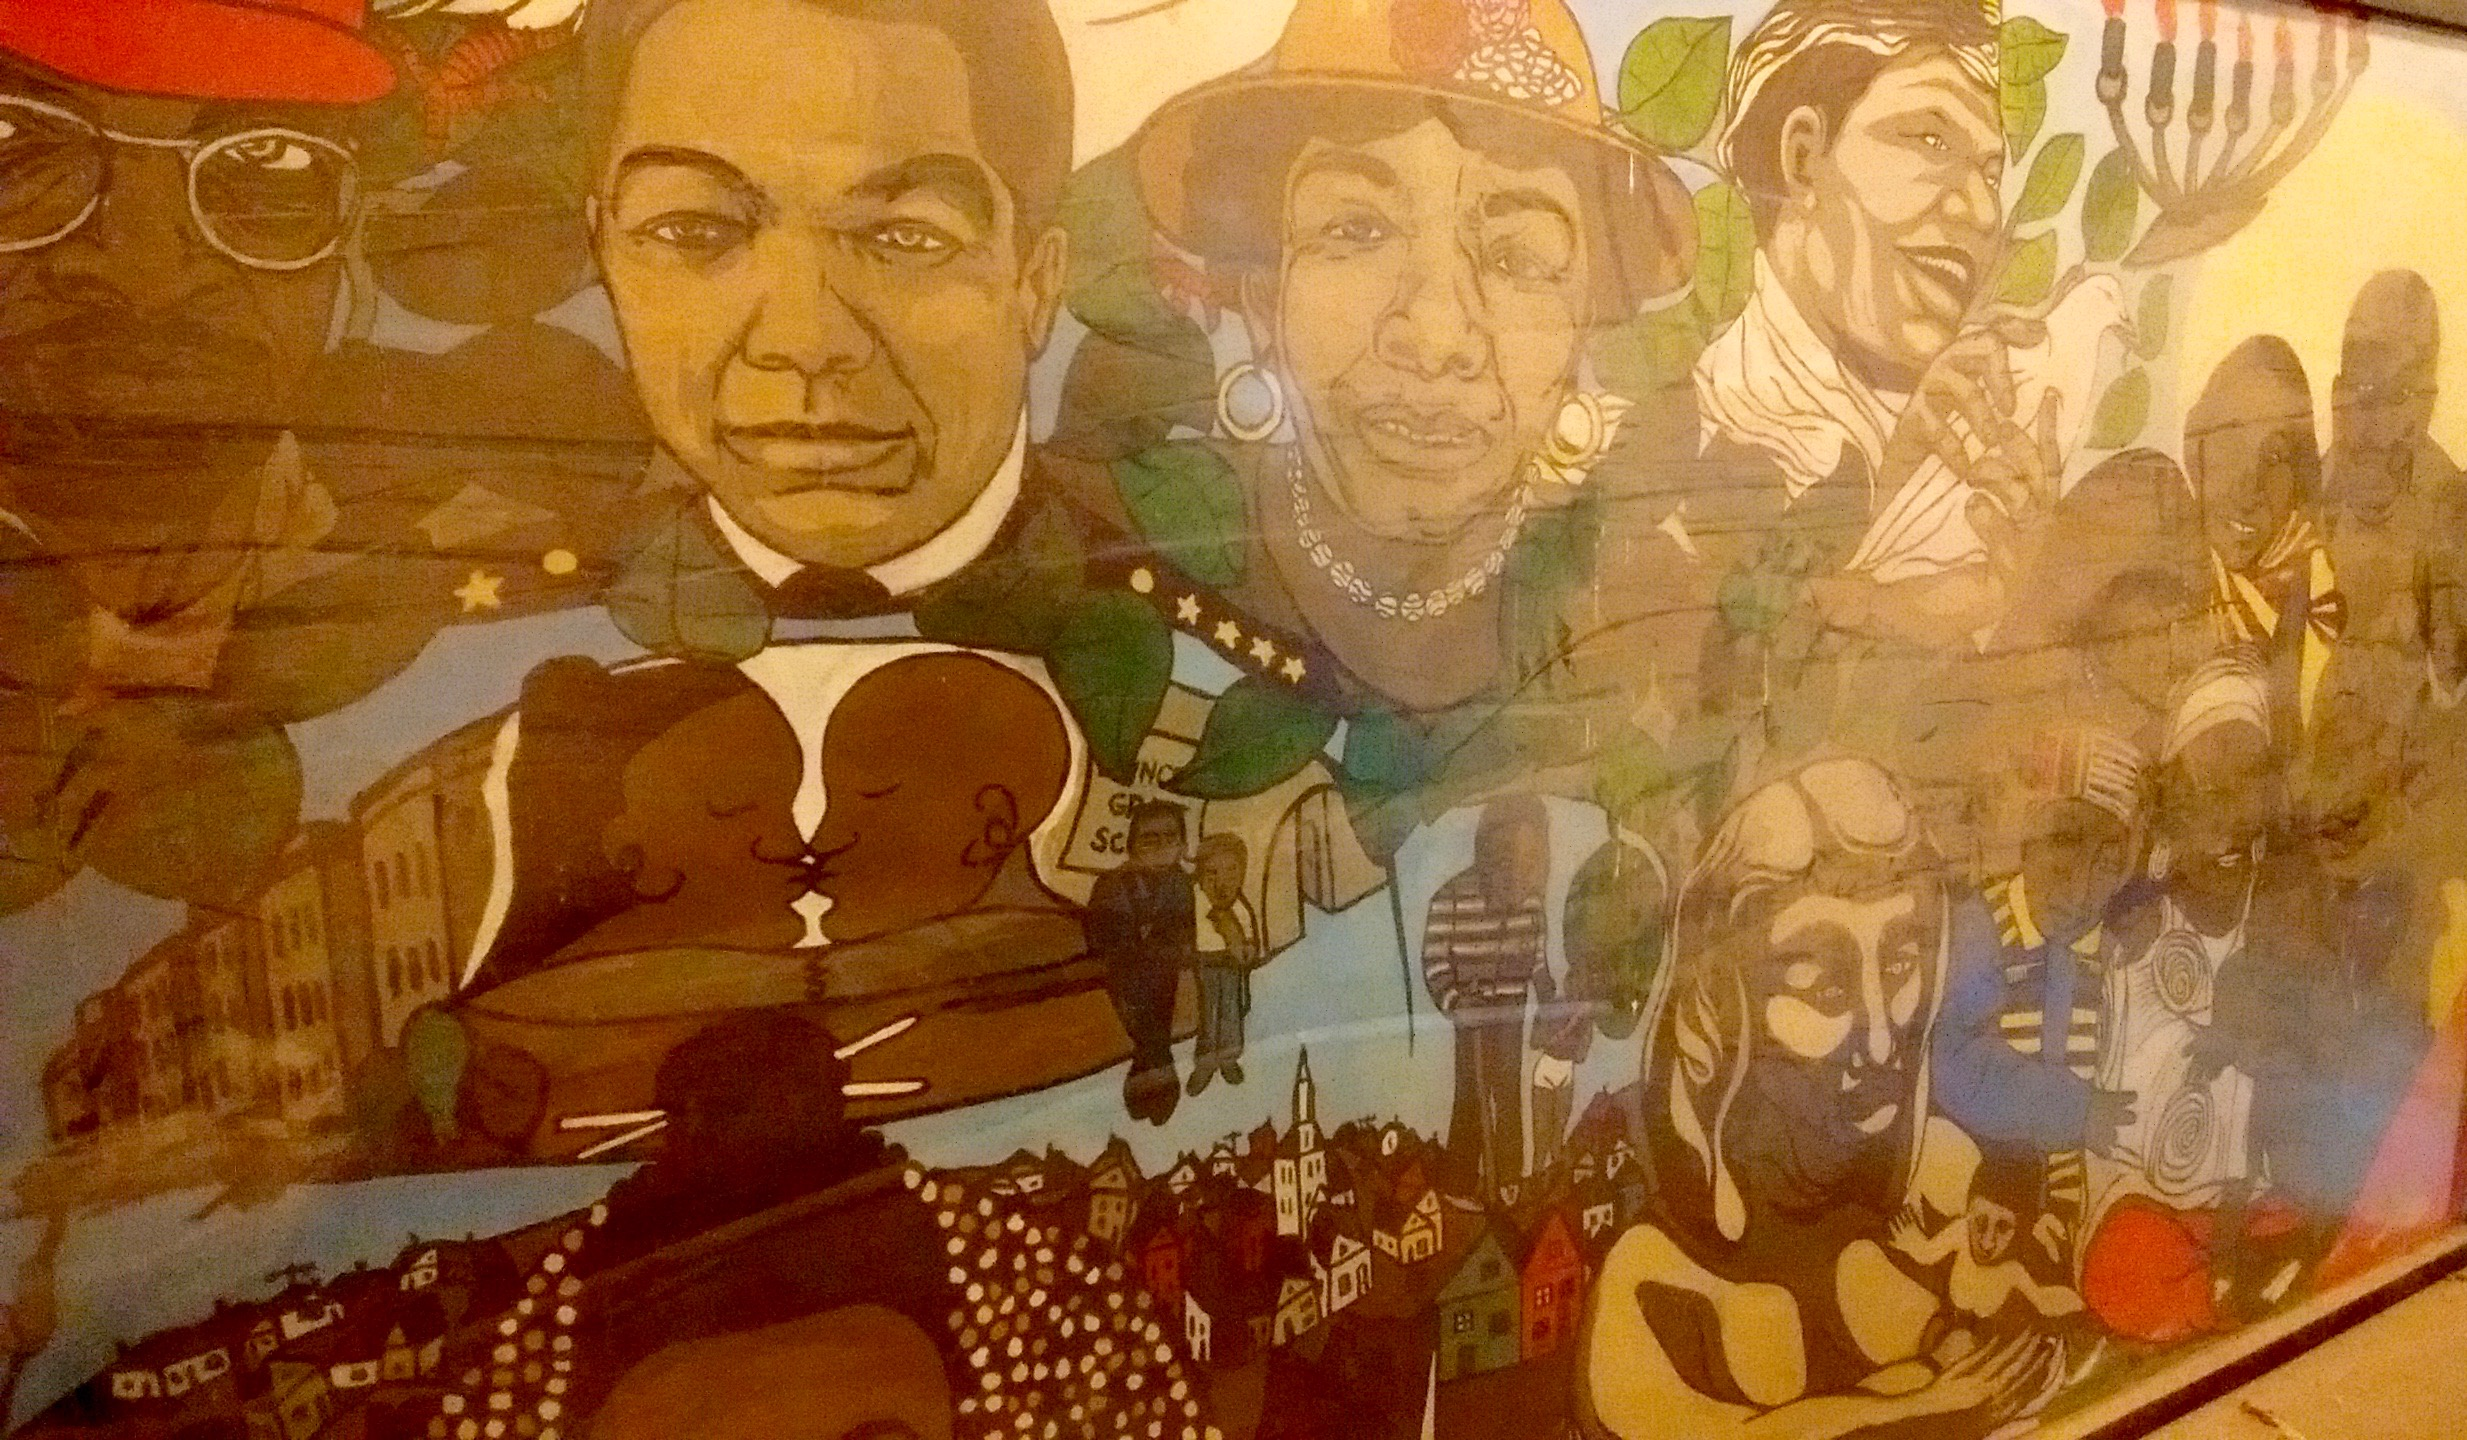 Refurbished mural from the gymnasium.